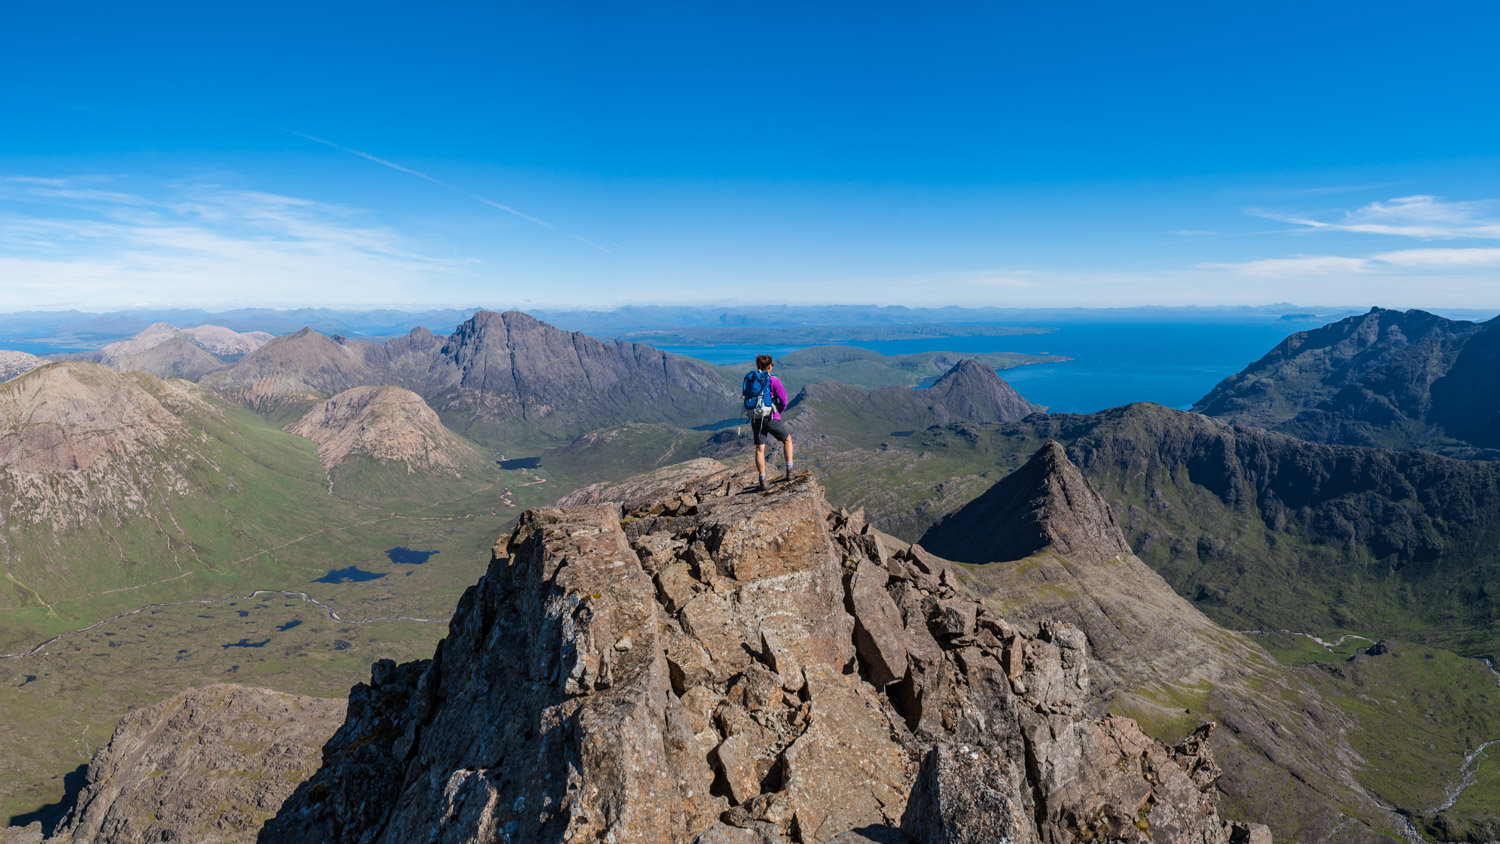 Enjoying one last view of the Cuillin from the summit.